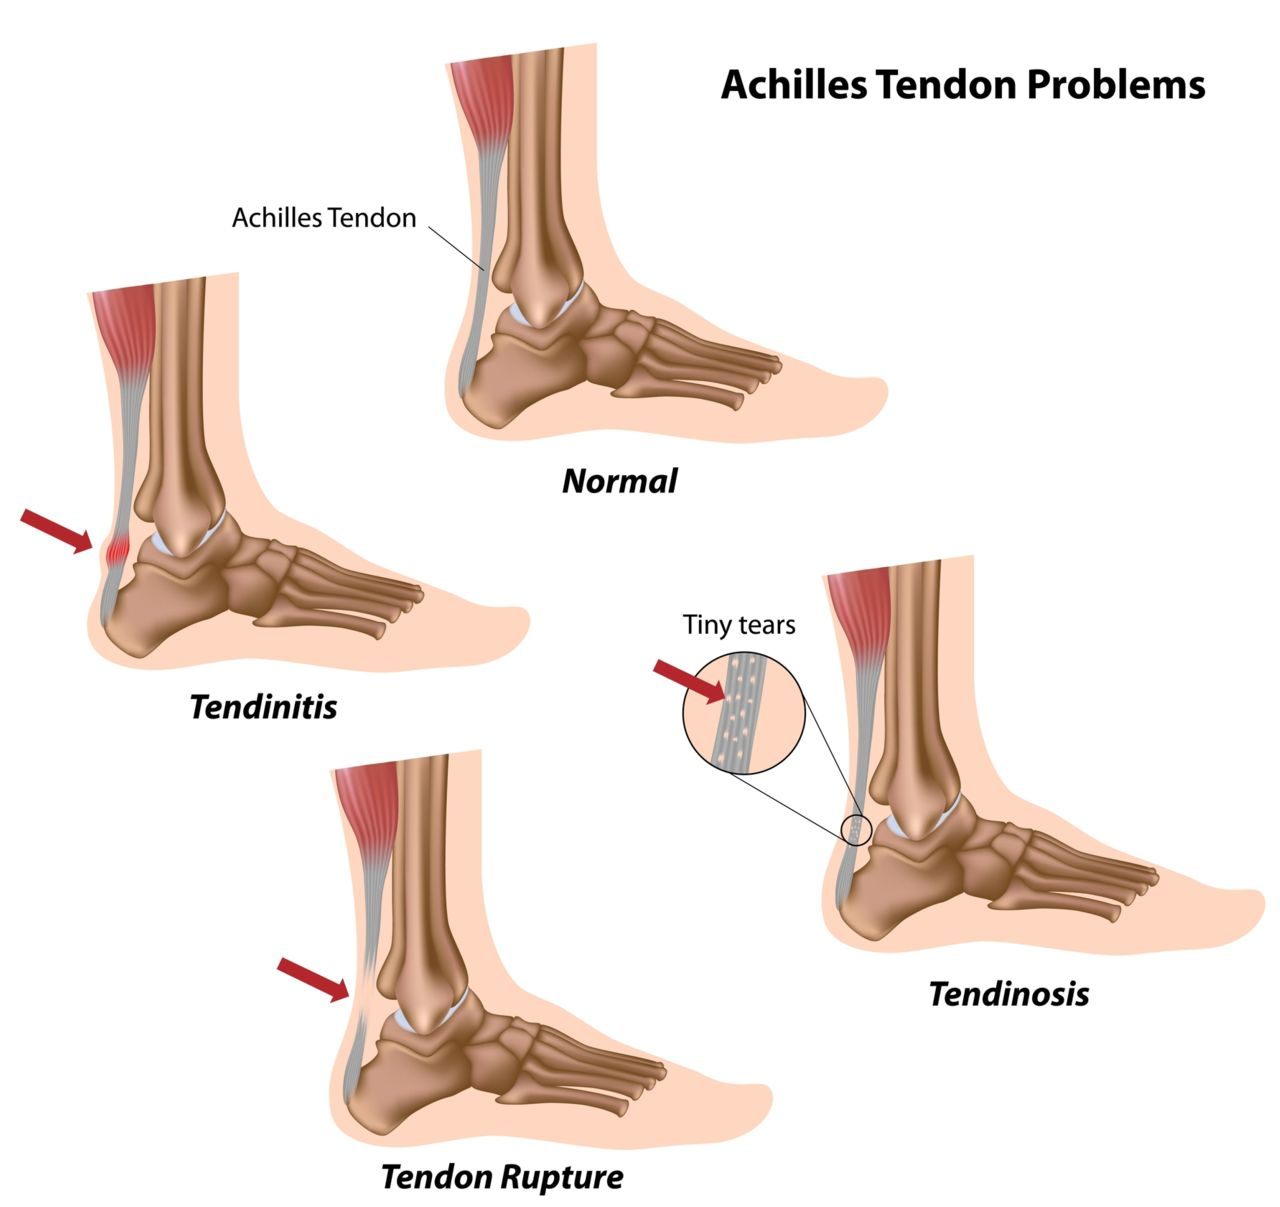 Achilles Tendon Injuries and Ruptures | Dallas Podiatry Works